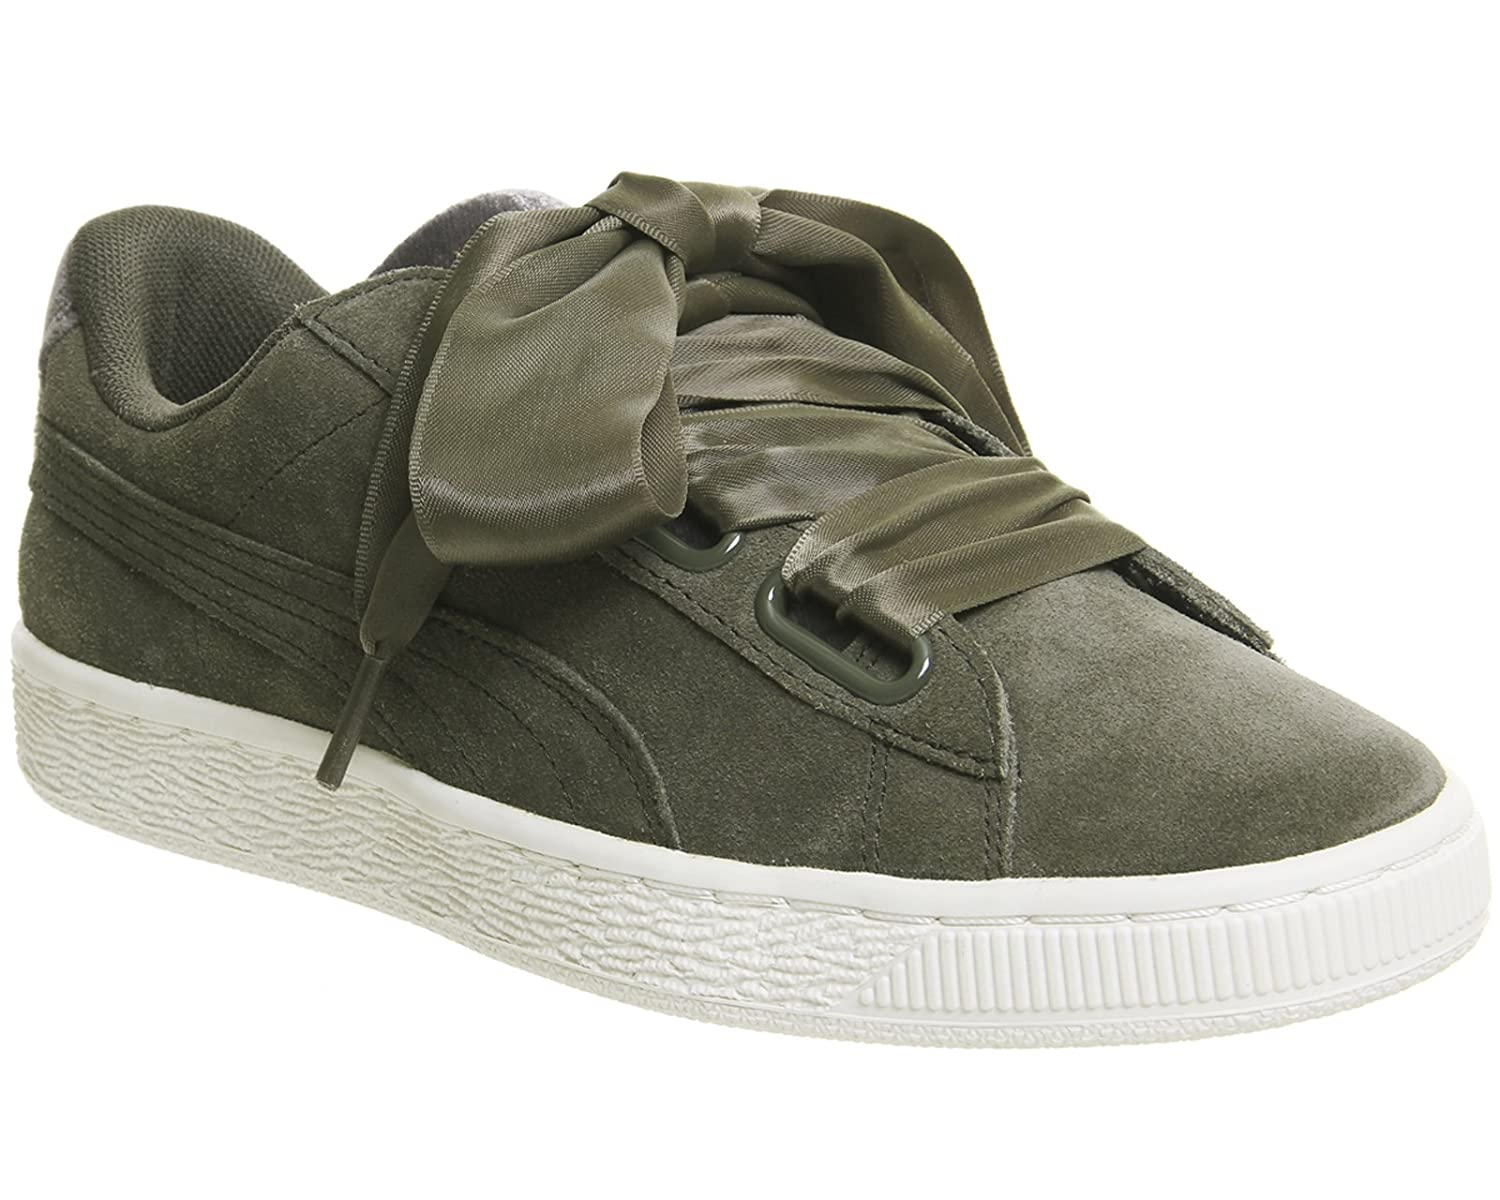 sports shoes 3c366 a1d32 Puma Women's Suede Heart Velvet Rope 365111-01 Trainers